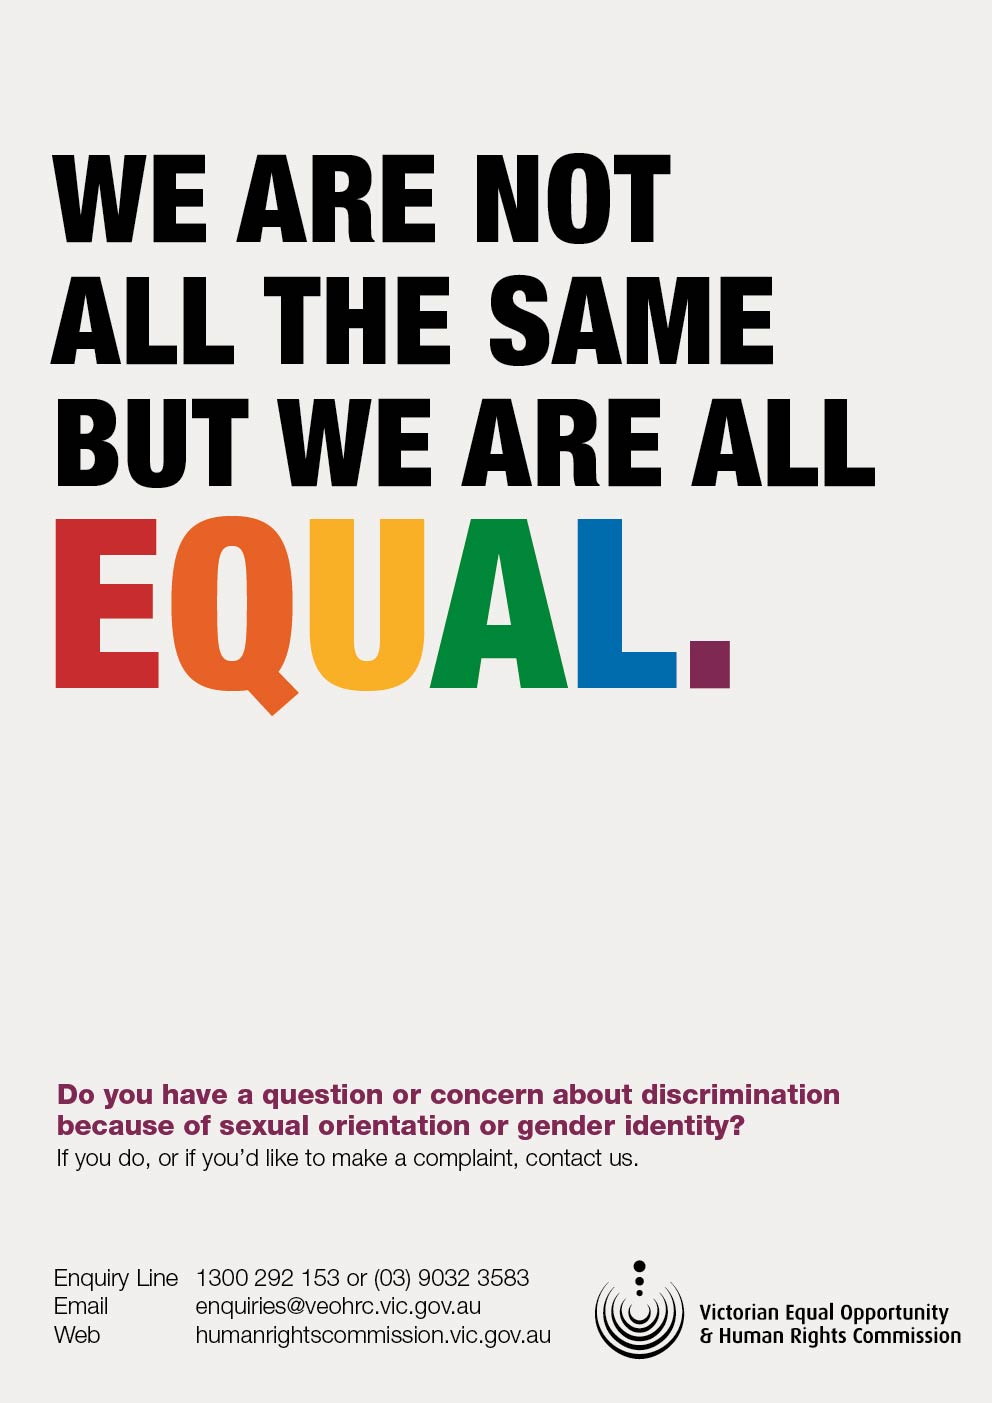 We are not all the same but we are all EQUAL